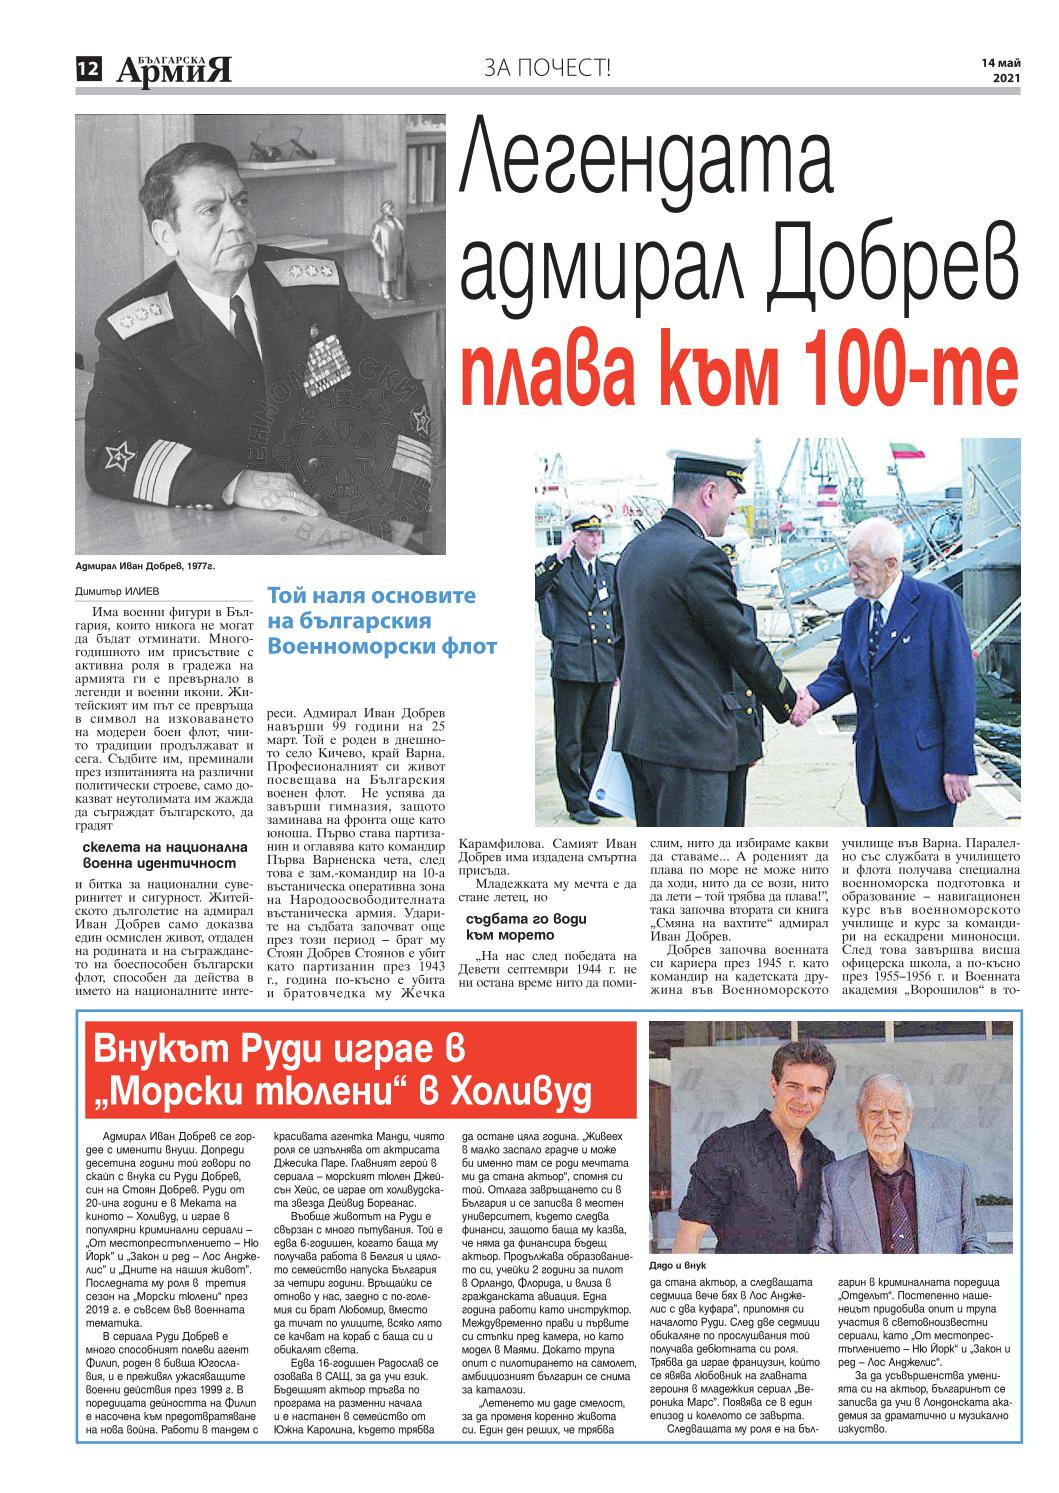 https://armymedia.bg/wp-content/uploads/2021/05/12.page1_-1.jpg